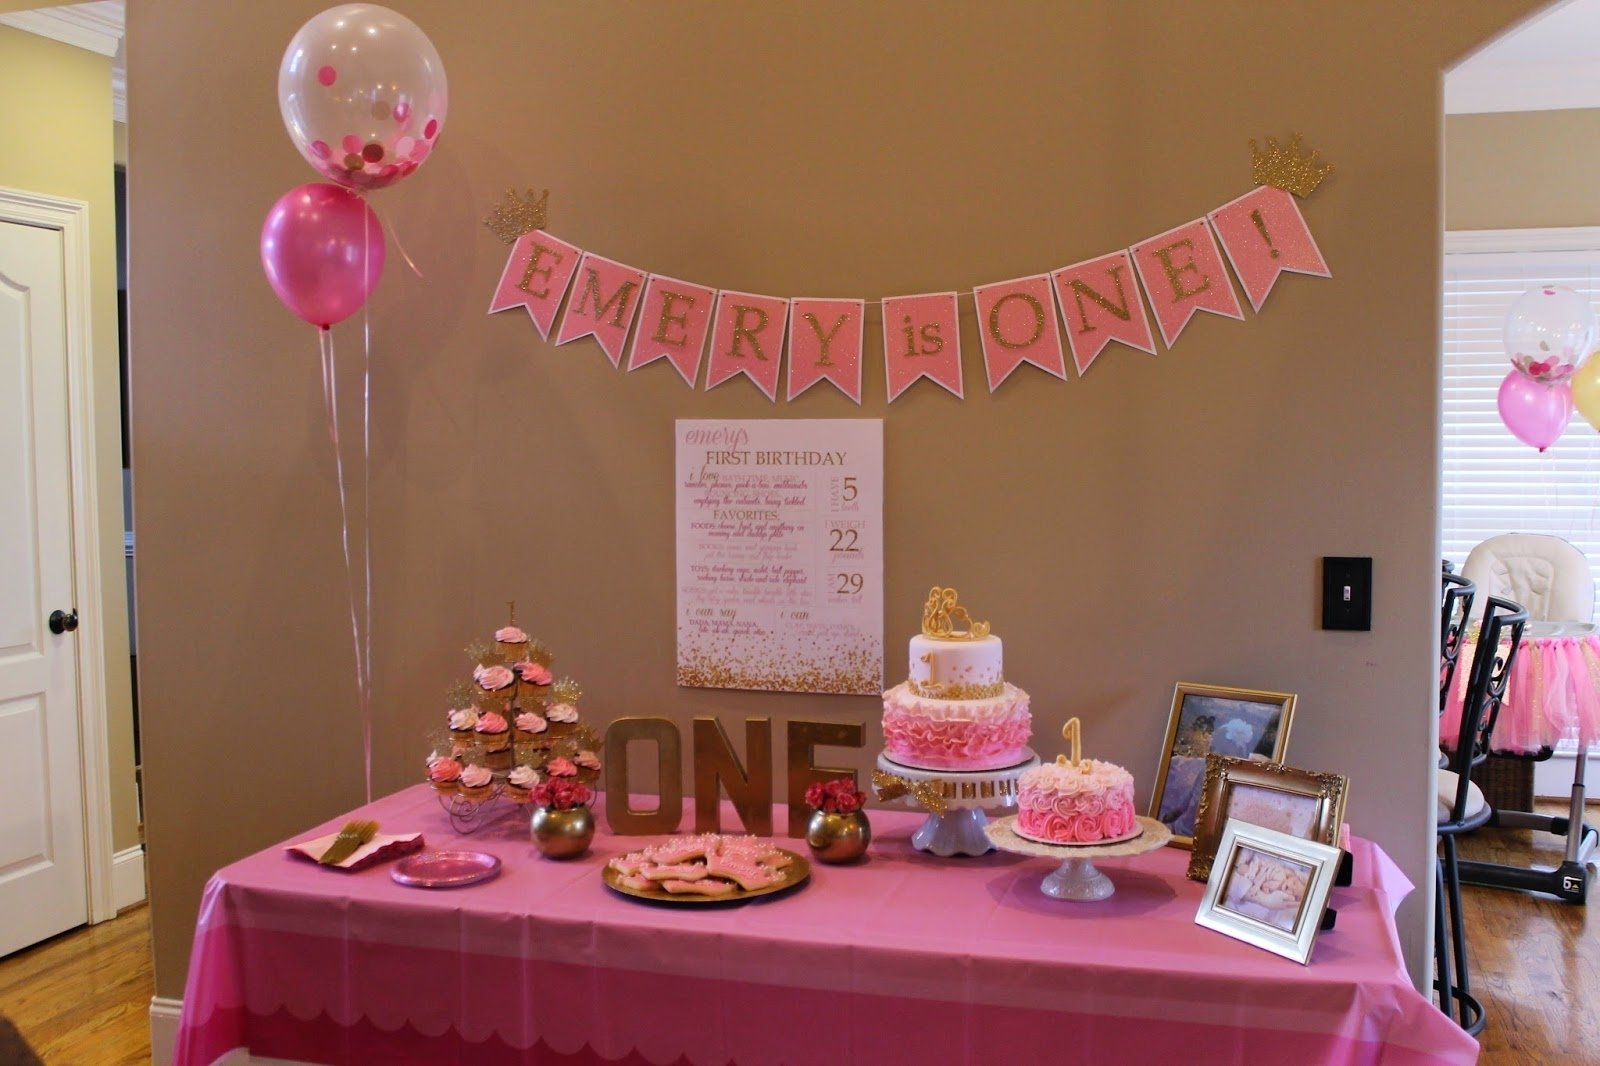 10 Perfect Princess 1St Birthday Party Ideas richly blessed emerys 1st birthday party 2020